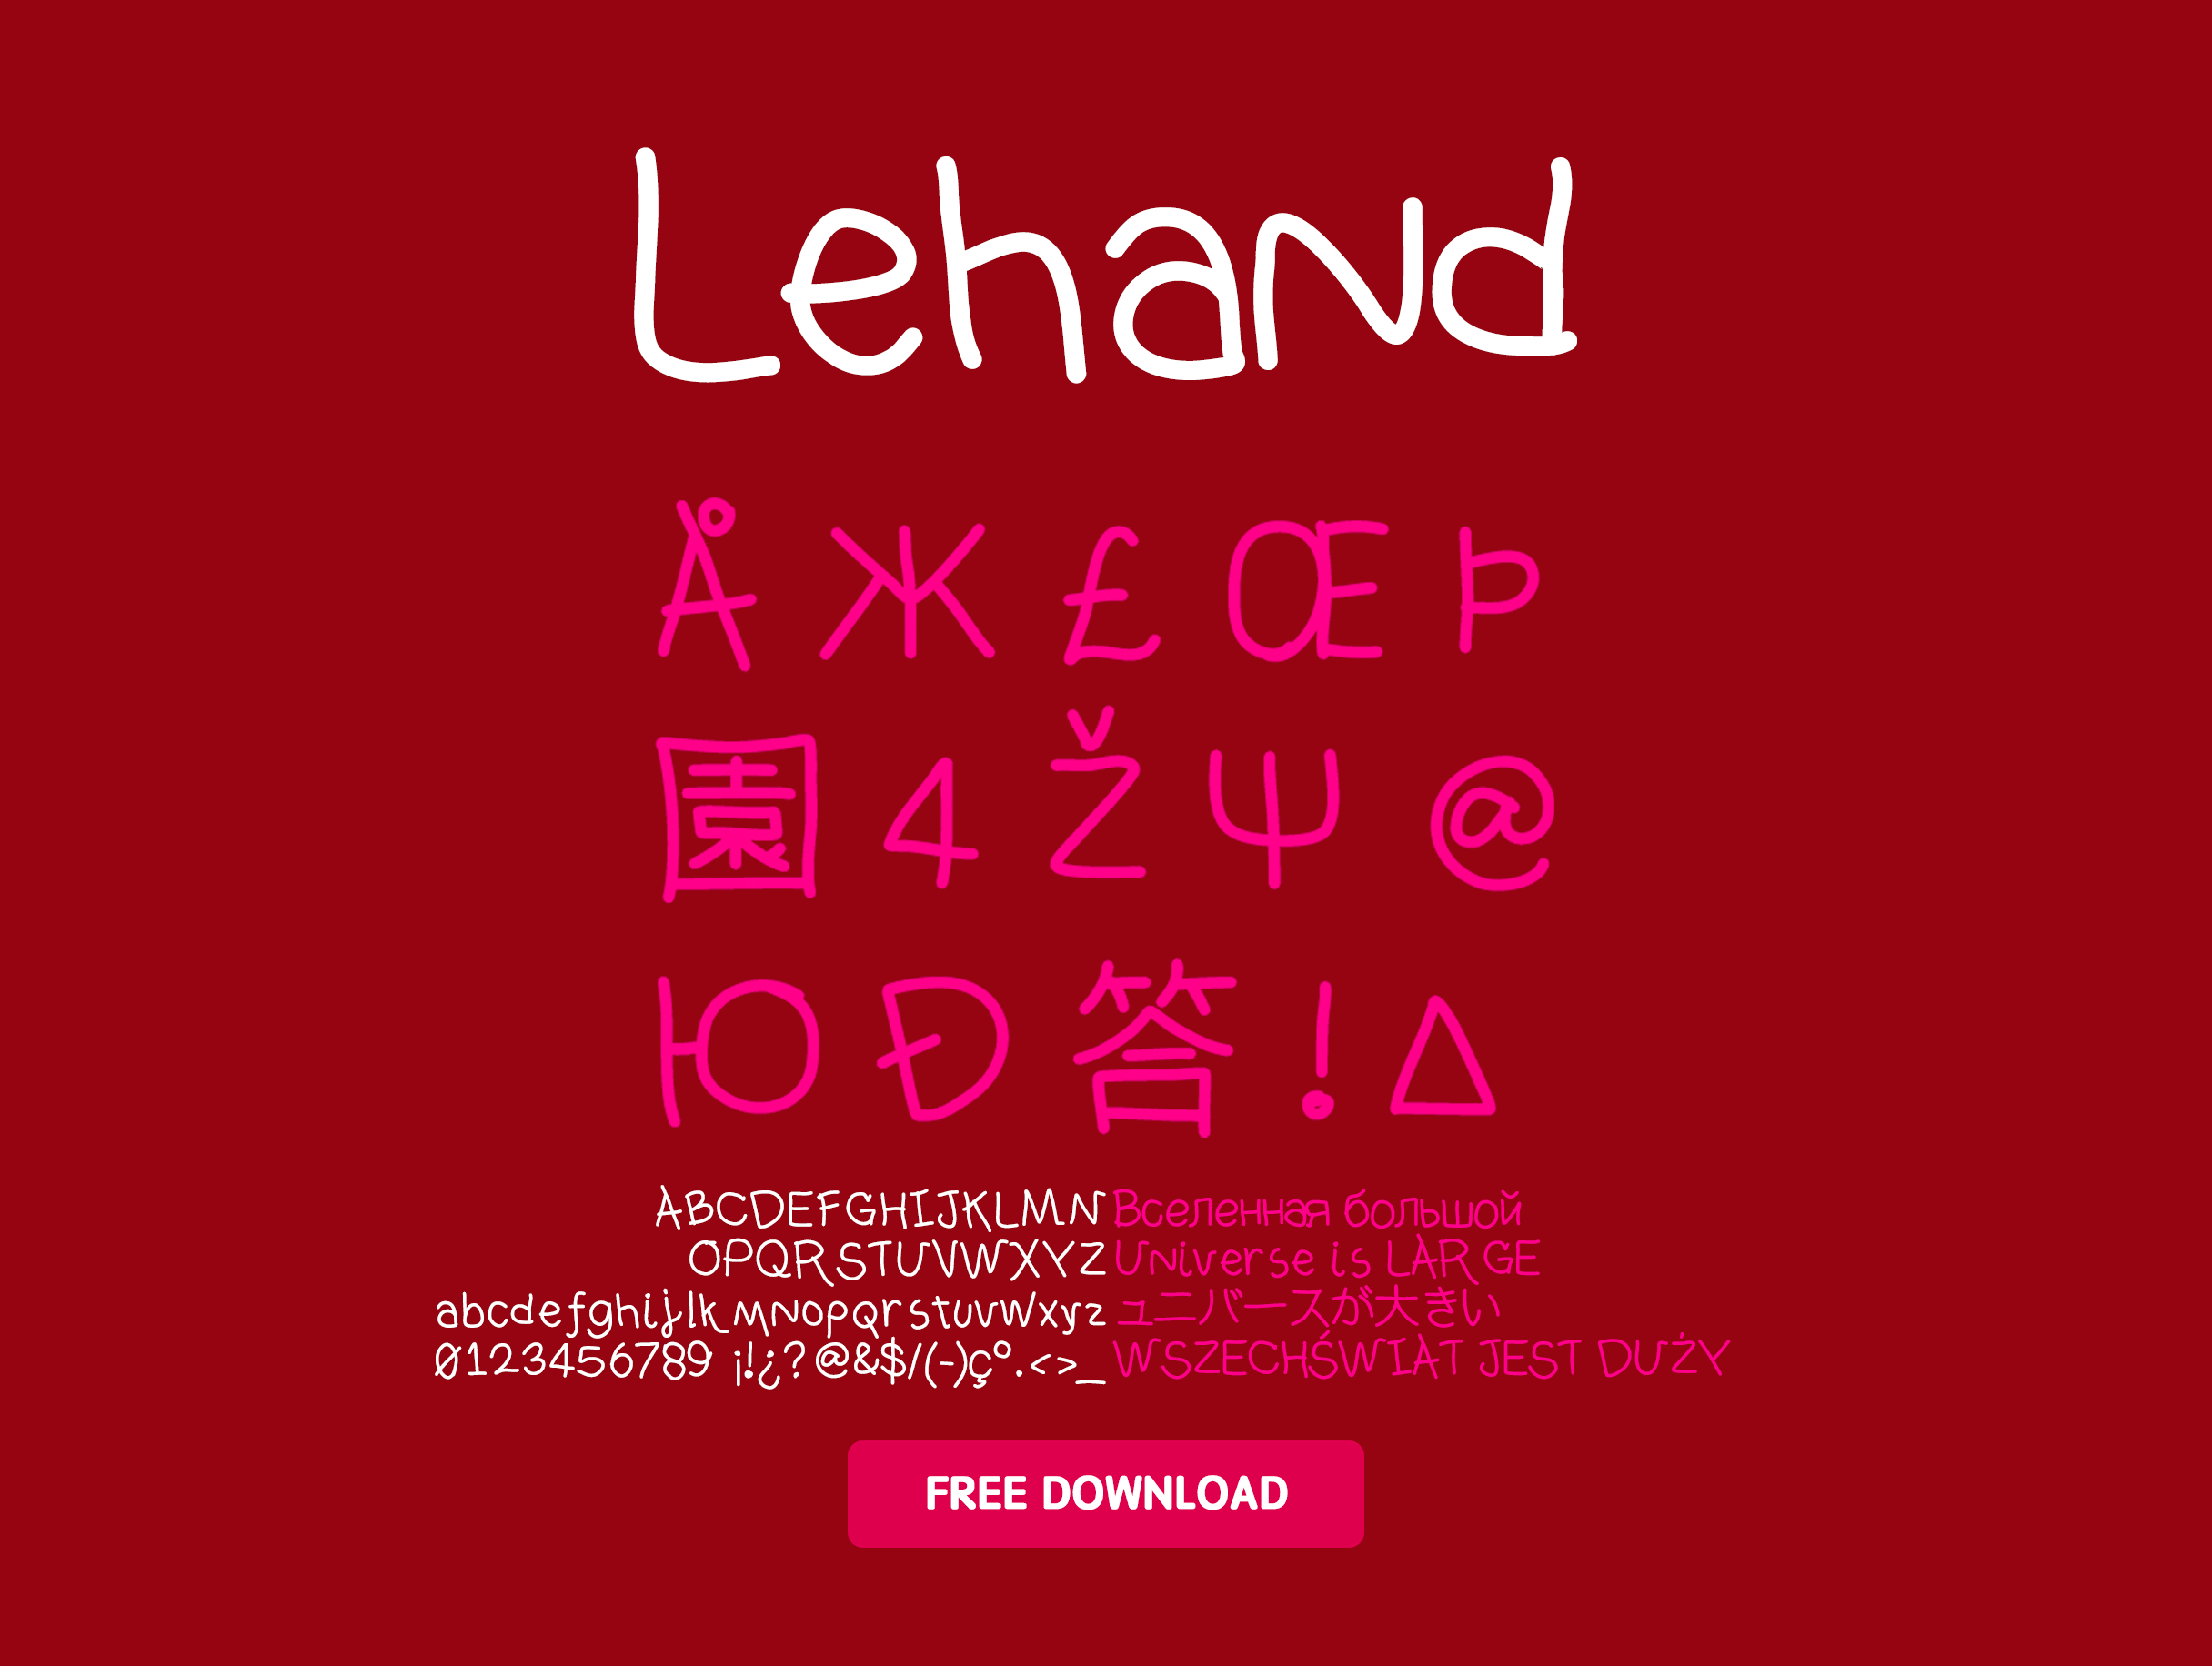 lehand.png